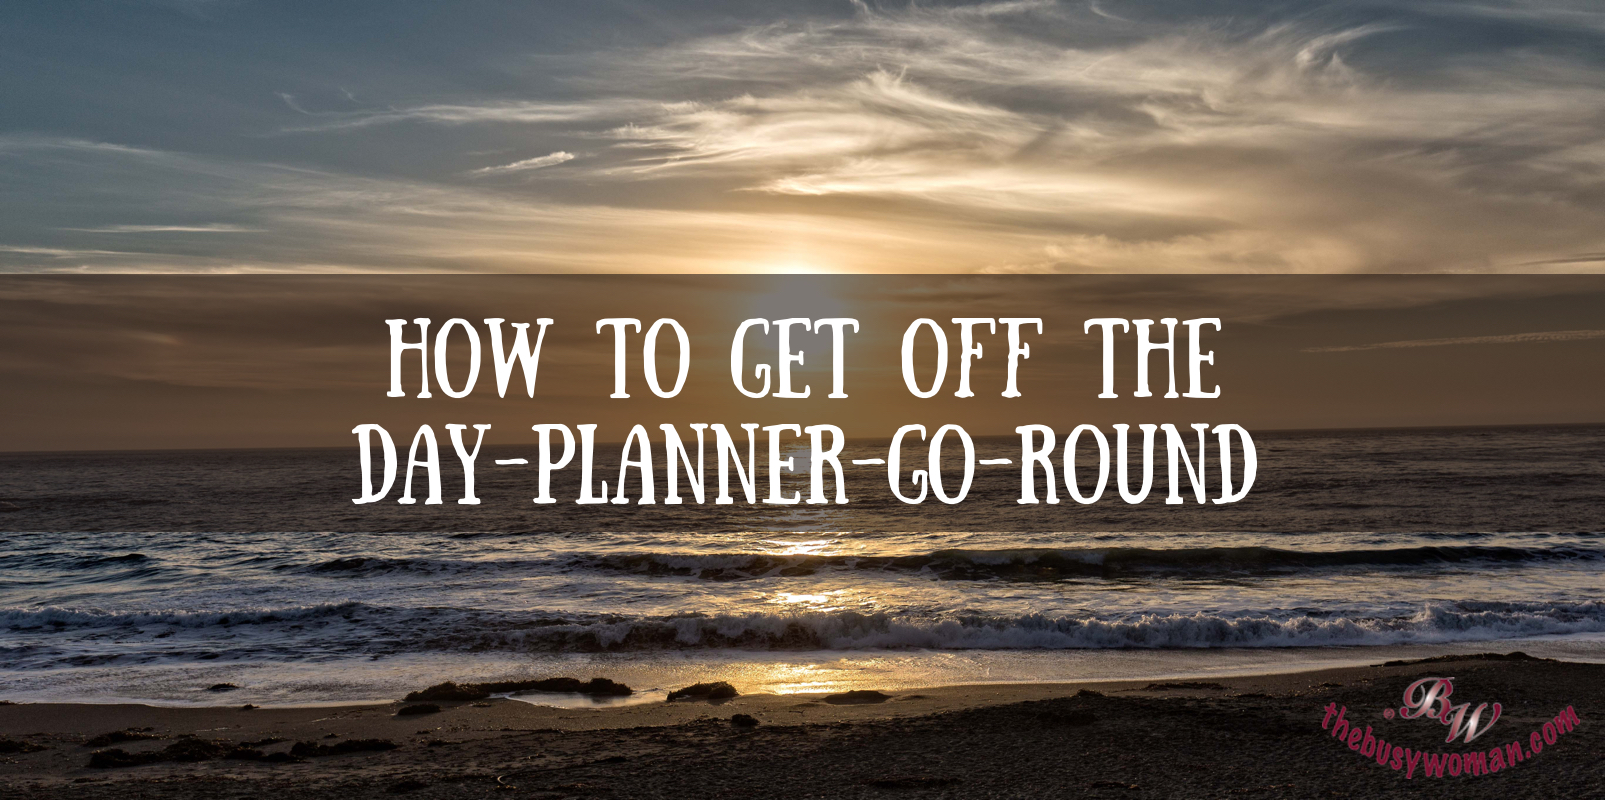 How To Get Off The Day Planner Go Round